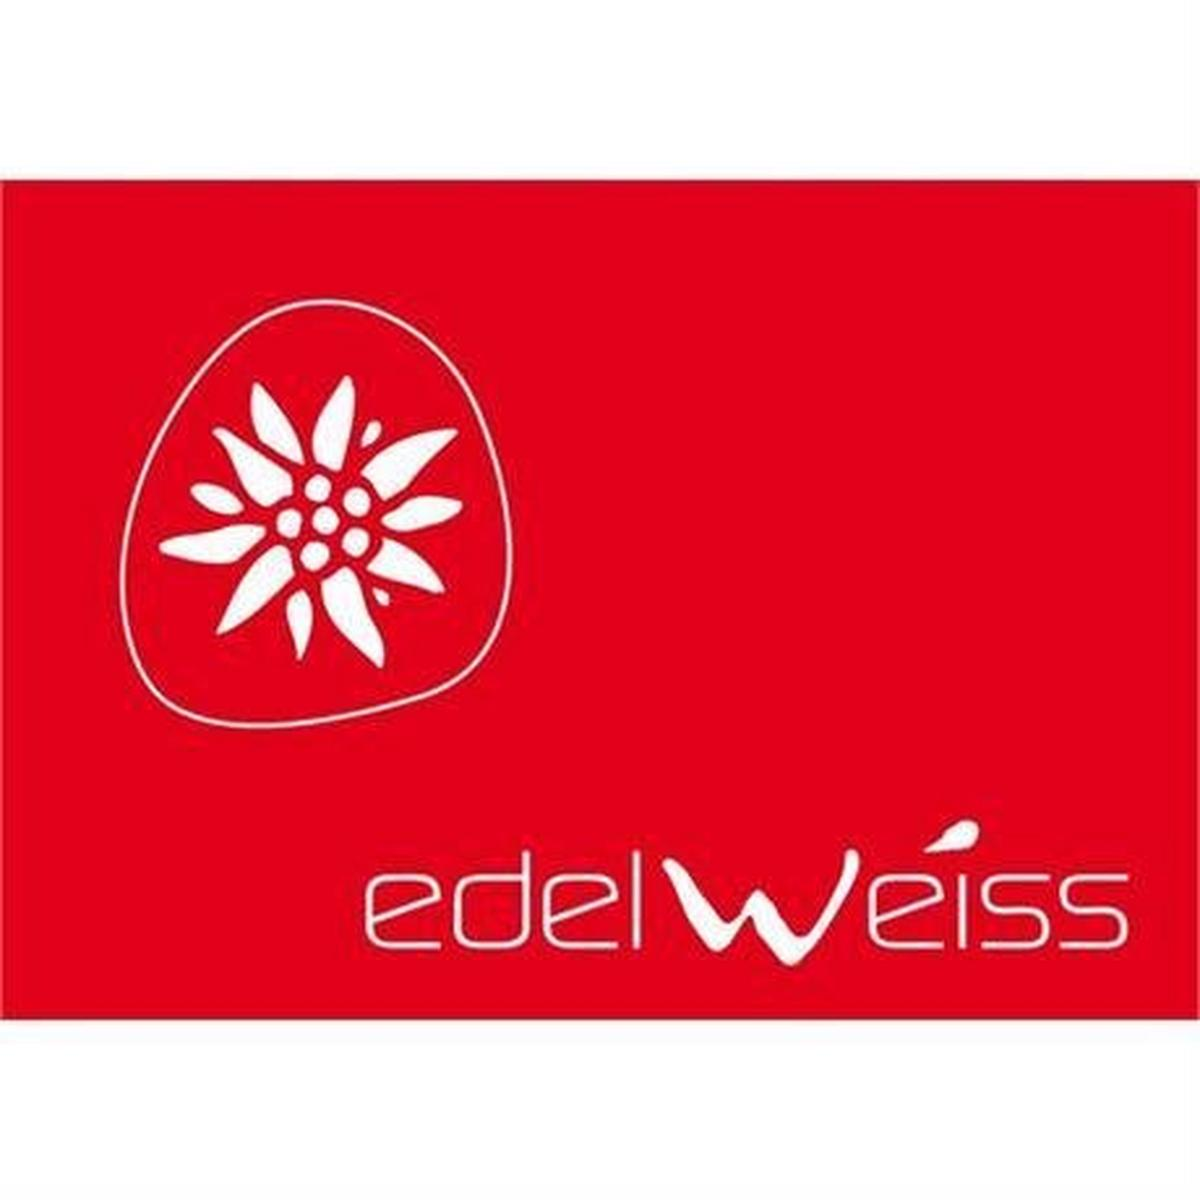 Edelweis s Ropes Accessory Cord 2mm Black